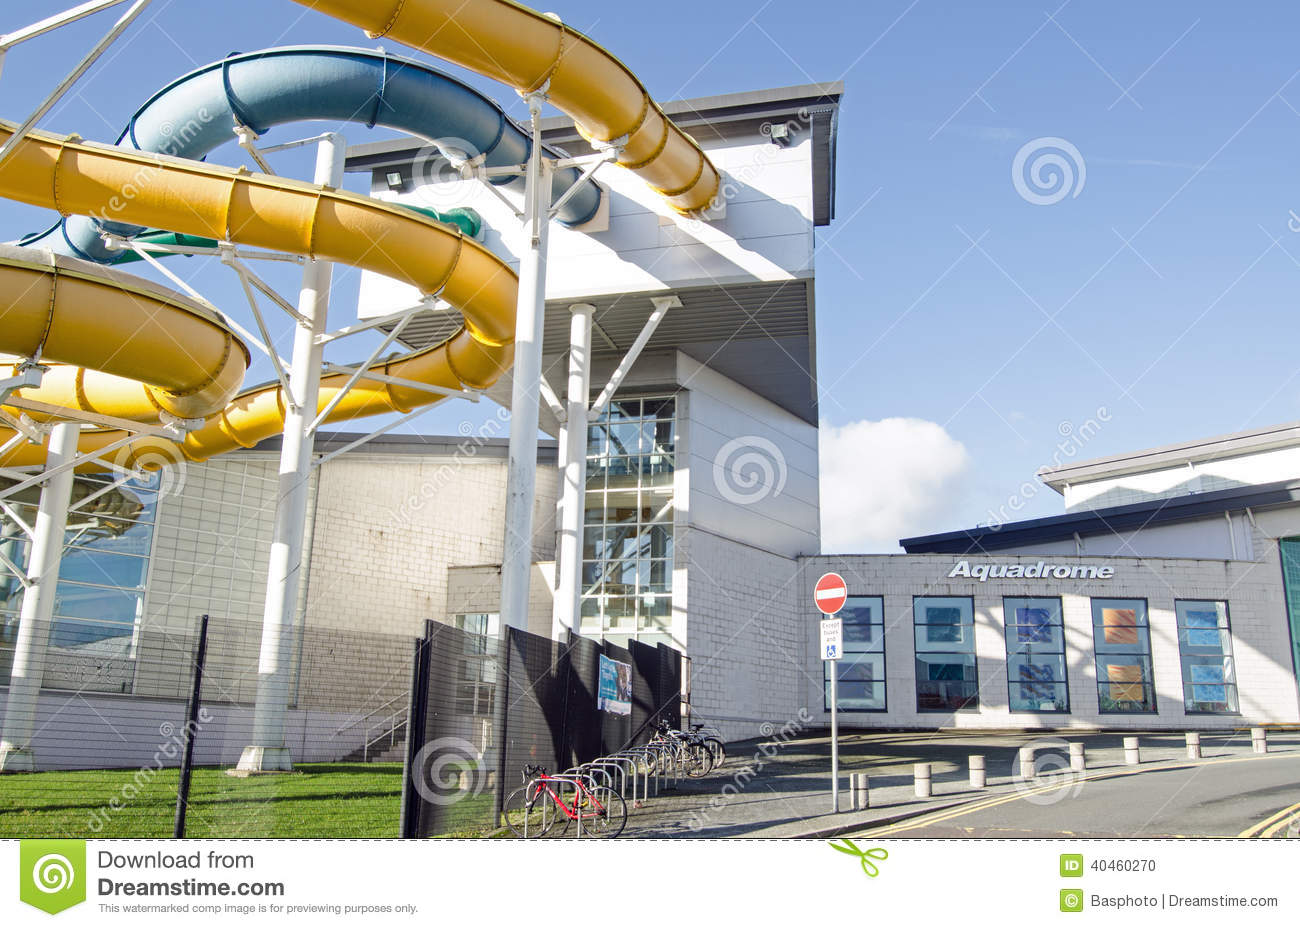 Basingstoke aquadrome editorial image image 40460270 - Swimming pools with waterslides in london ...